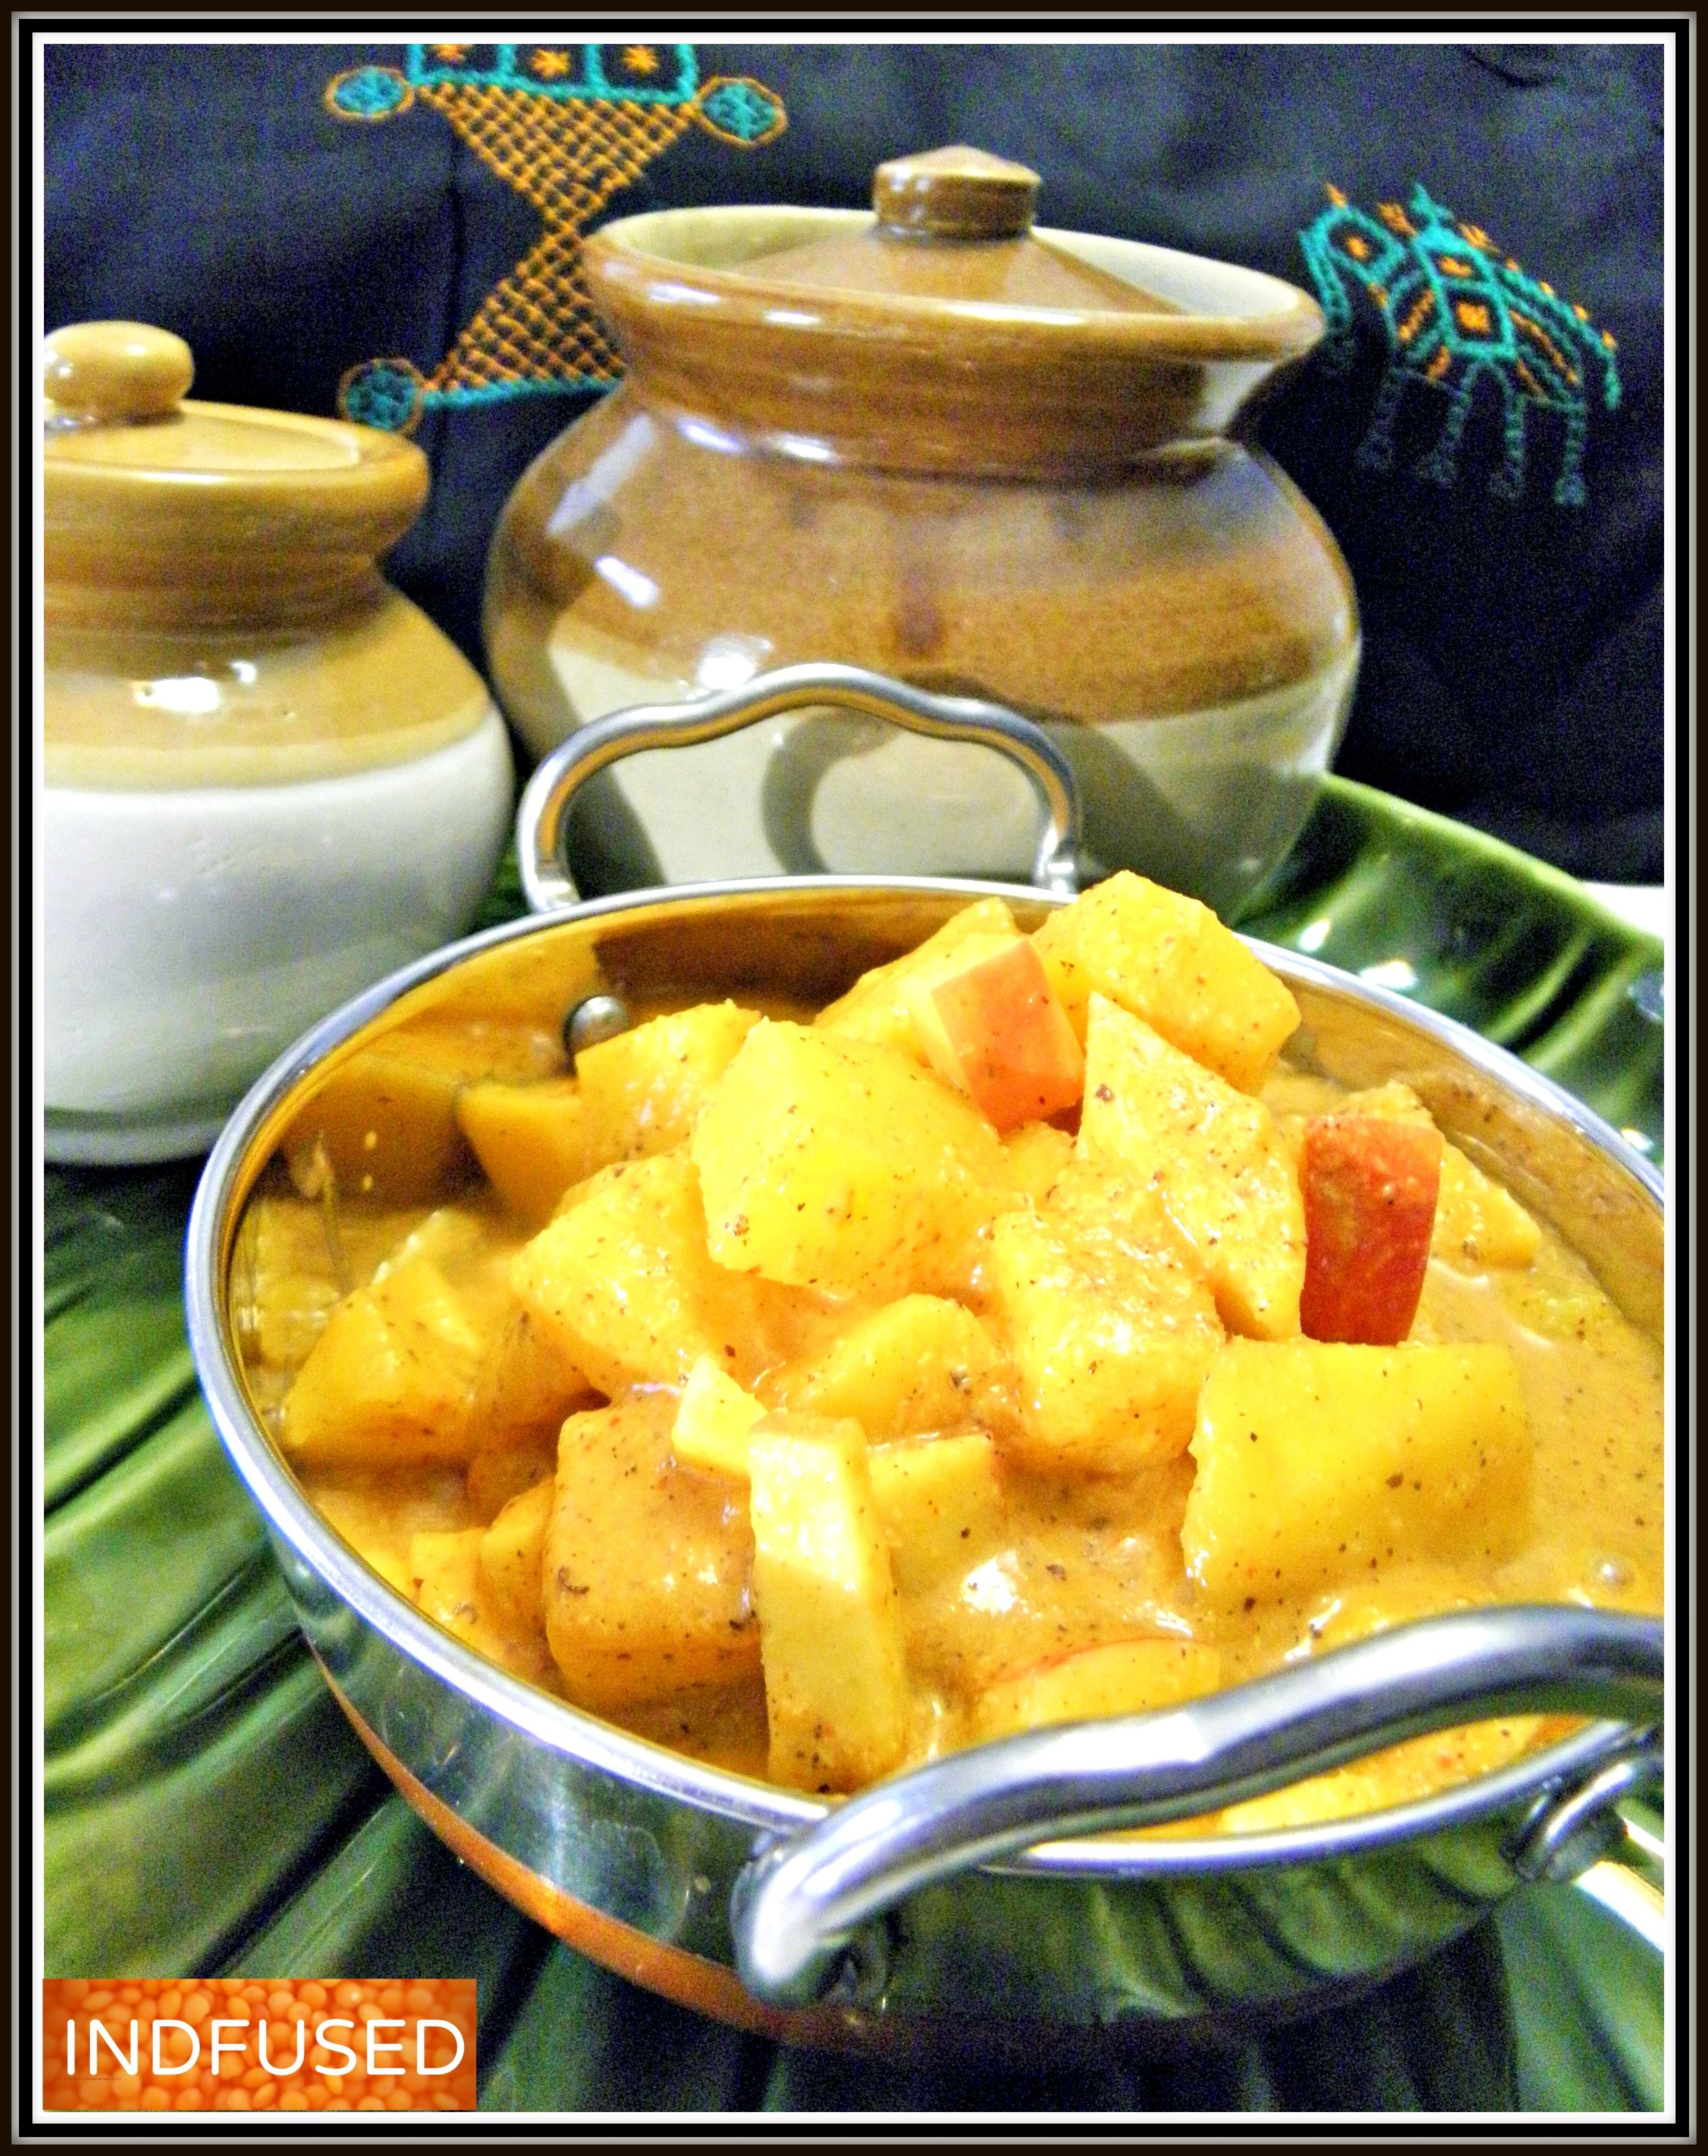 Pineapple and mango sasav an heirloom recipe recipes indian indian food recipes forumfinder Images